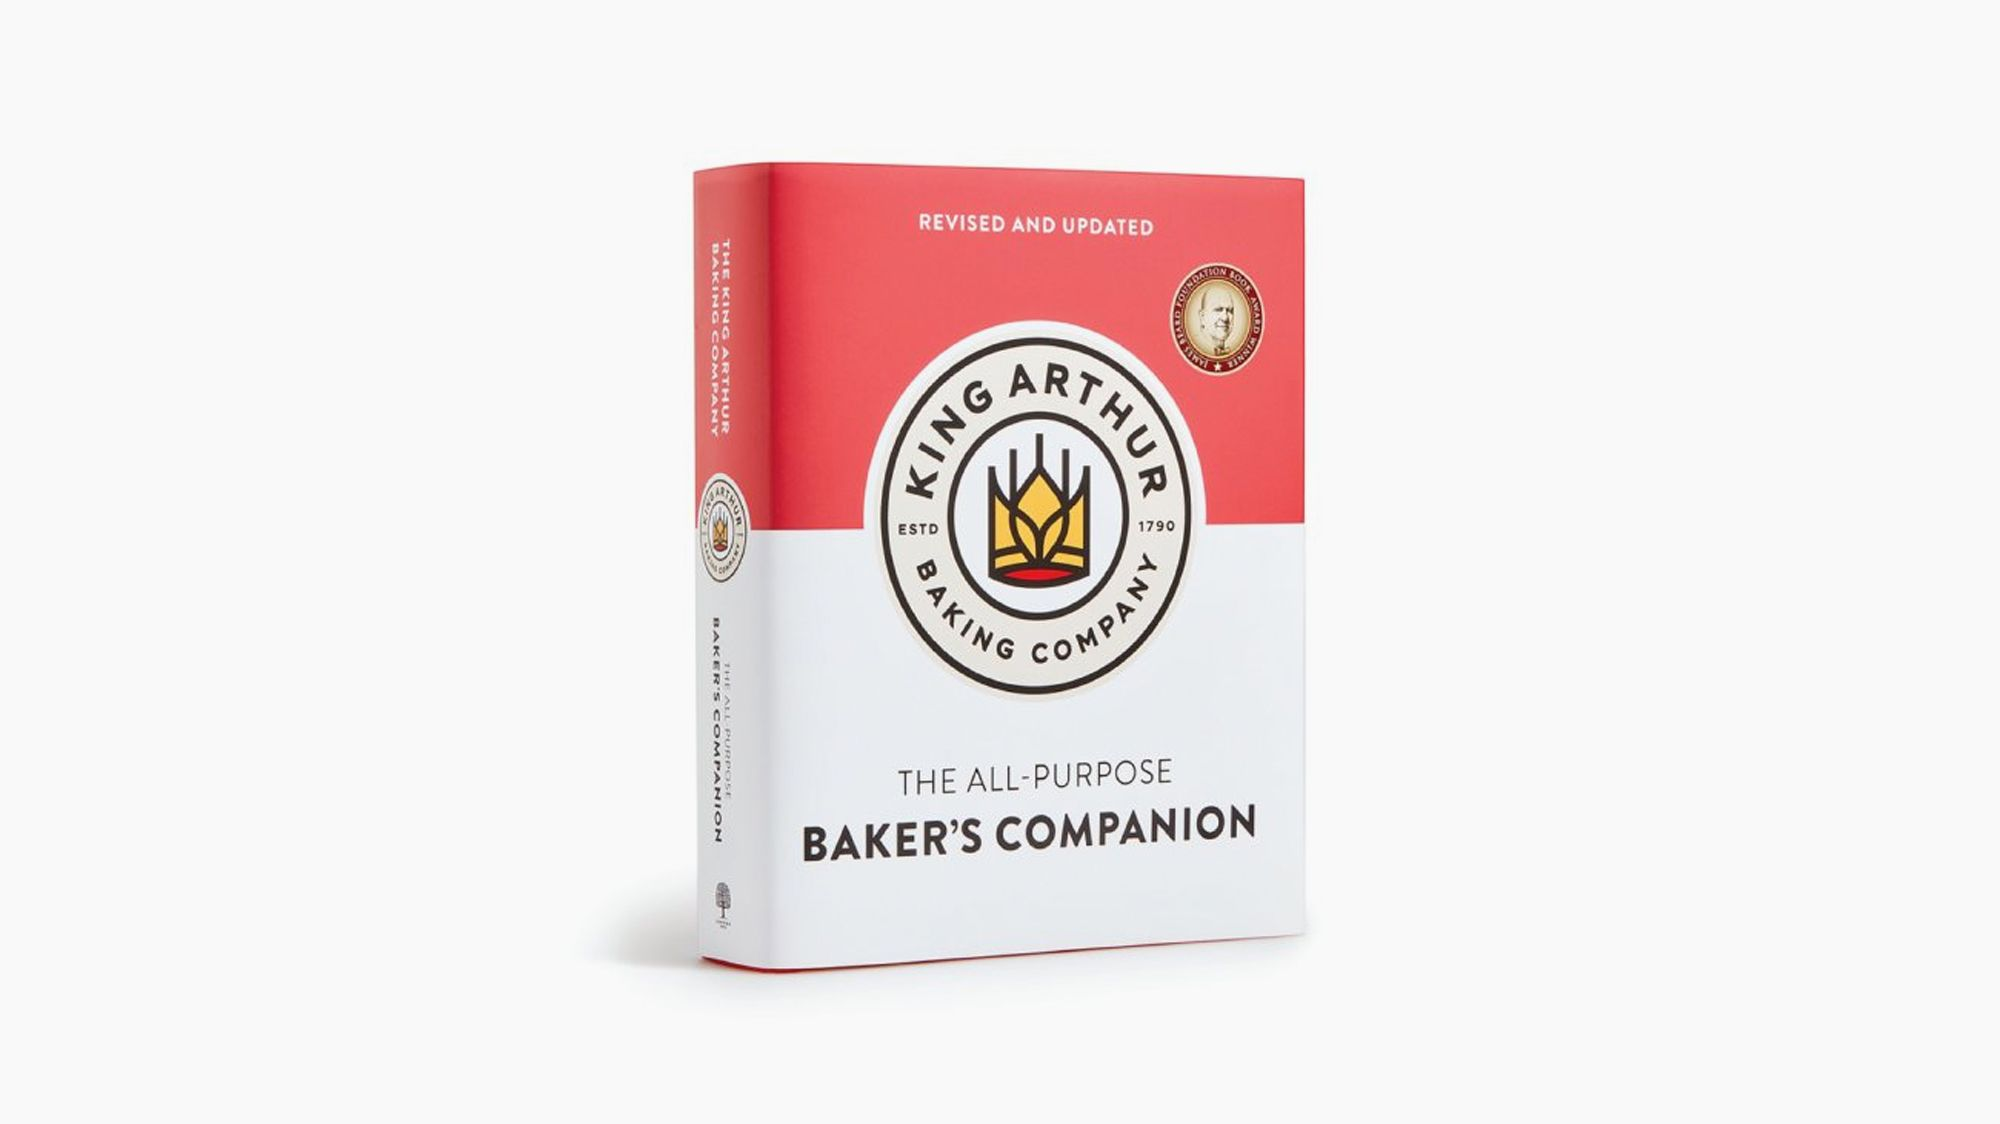 The King Arthur Baking Company Just Released Its Updated All-Purpose Baker's Companion